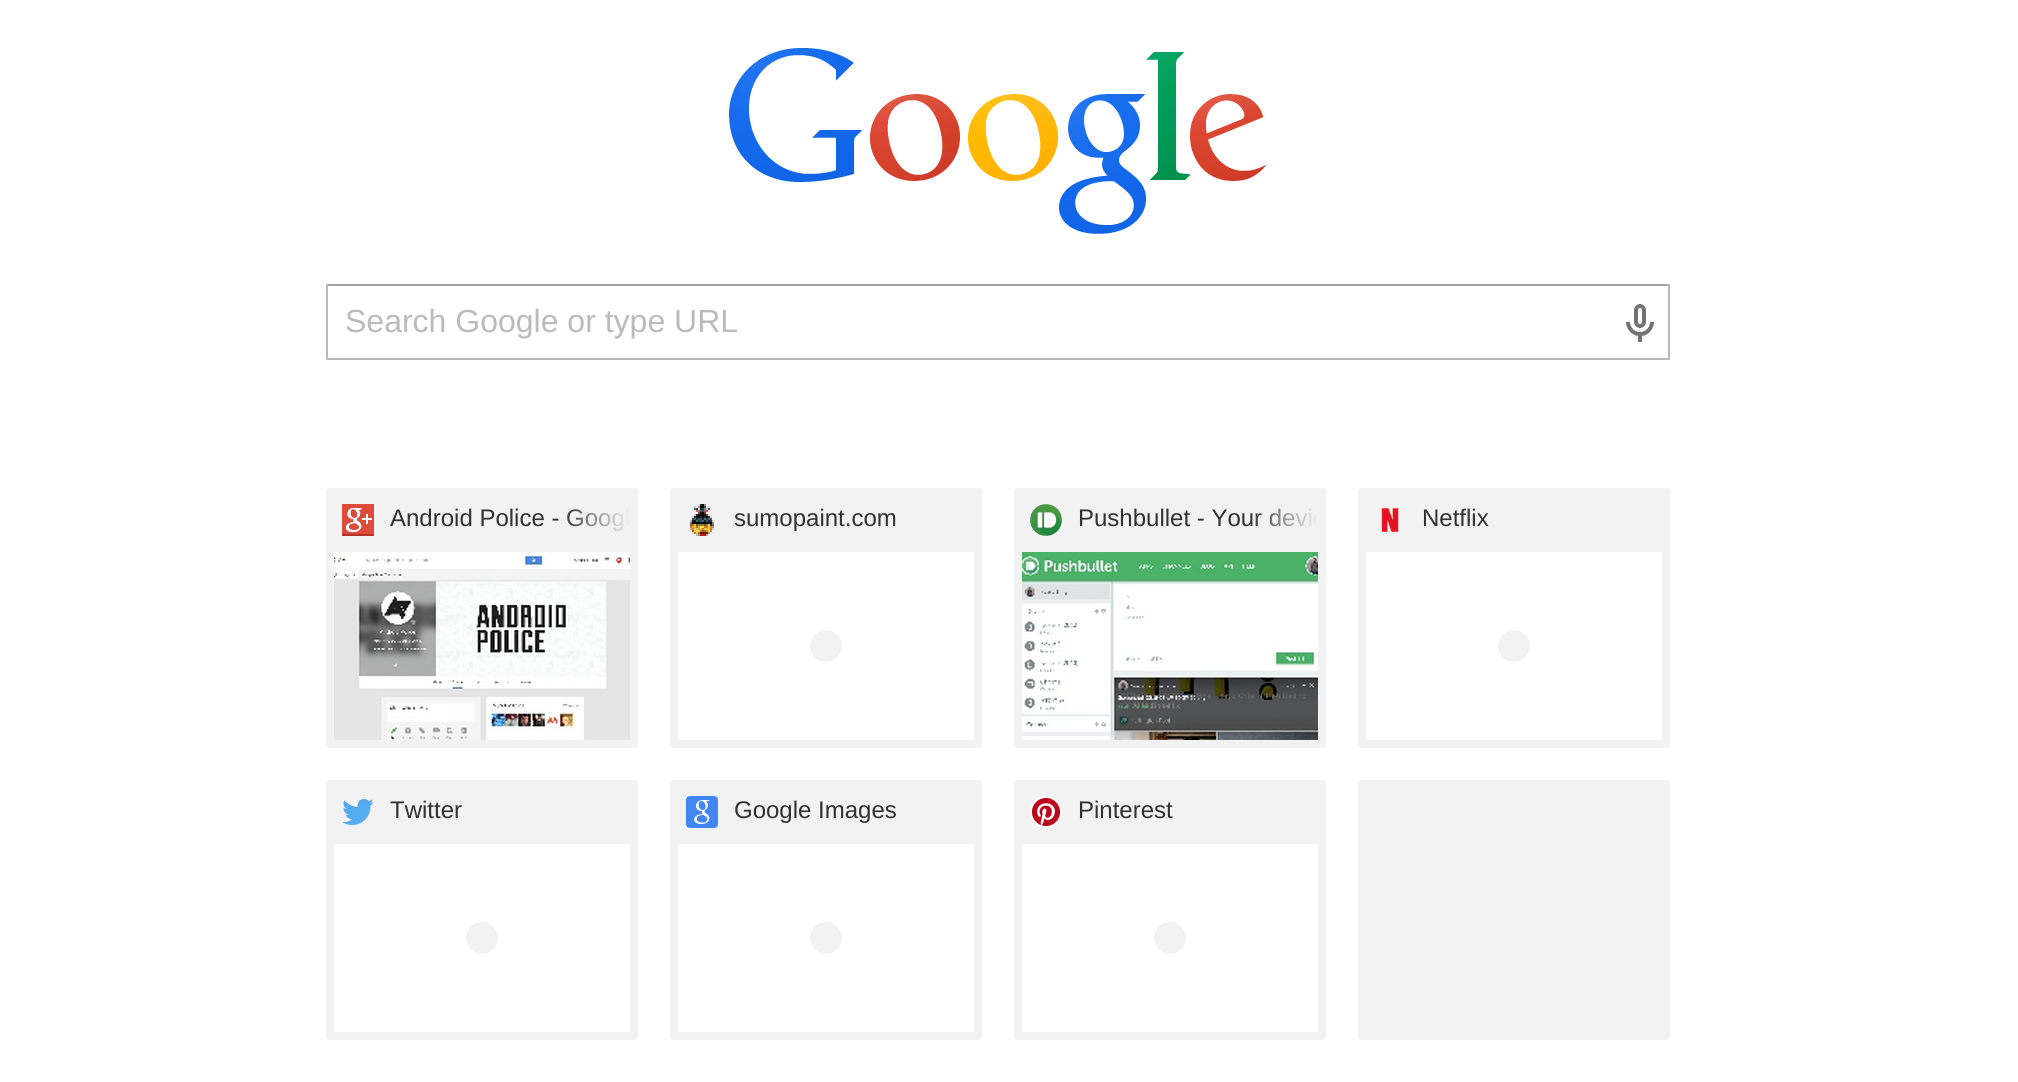 Chromium Team Currently Developing Experimental New Tab Page That